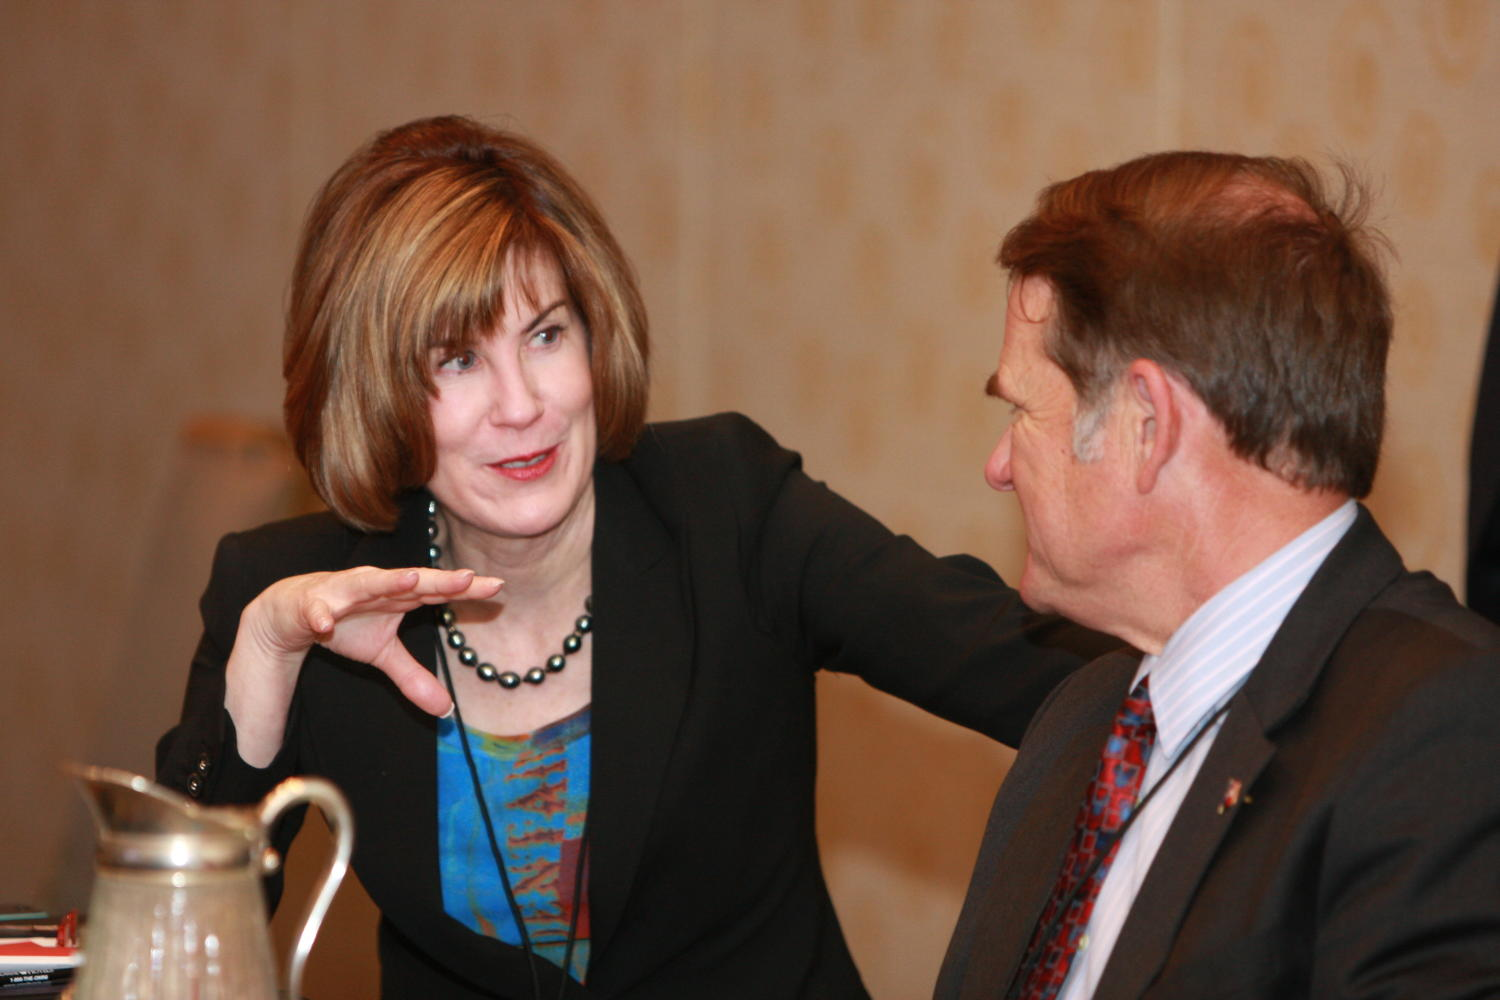 [Man and woman talking to one another at TDNA conference], Photograph of an unidentified man and woman seen talking to each other as they are attending the 2010 Texas Daily Newspaper Association annual meeting held in Houston, Texas.,